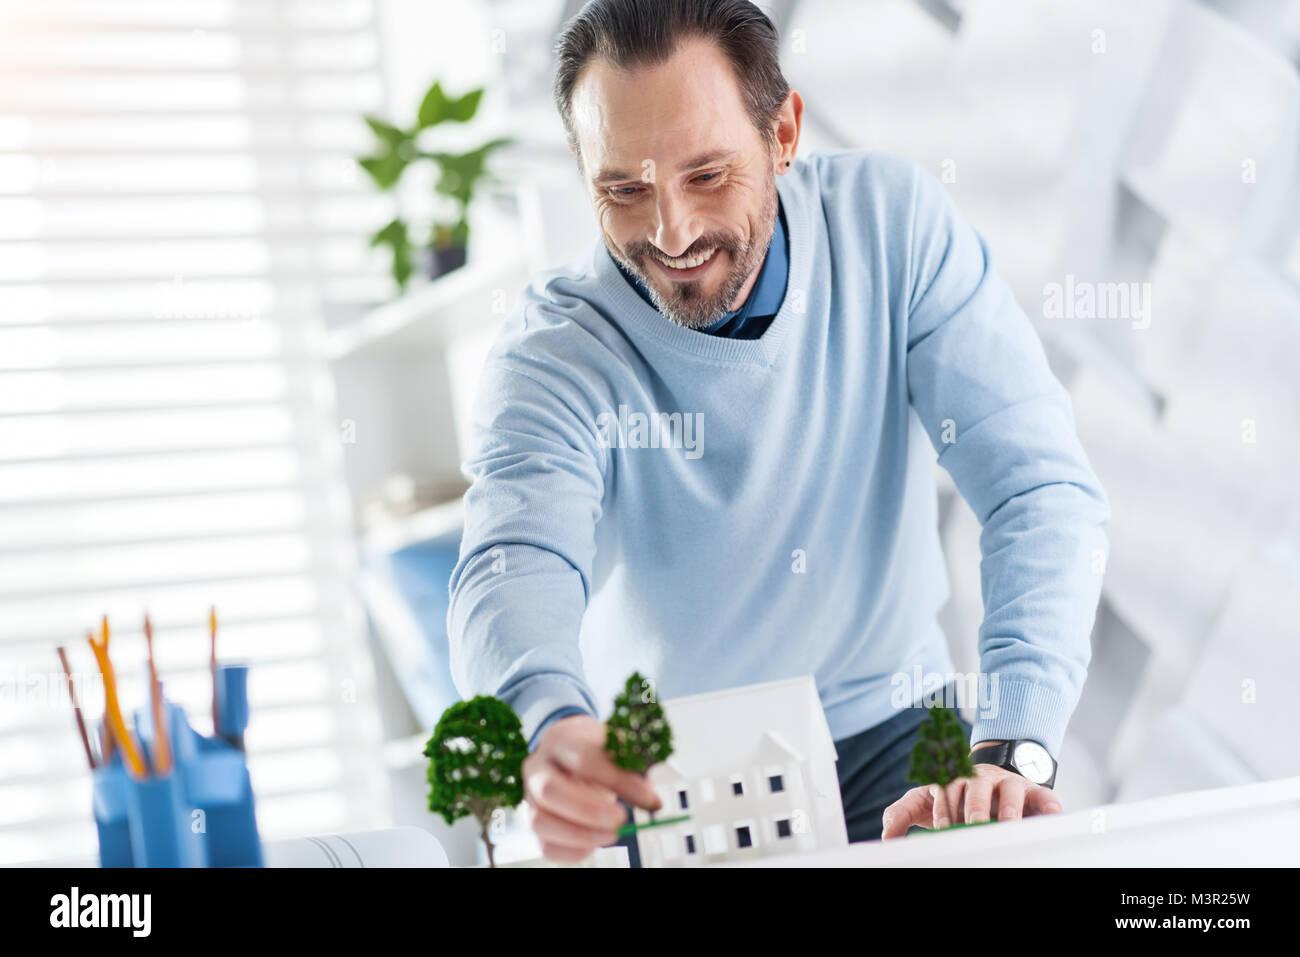 Joyful architect constructing the model of a house - Stock Image